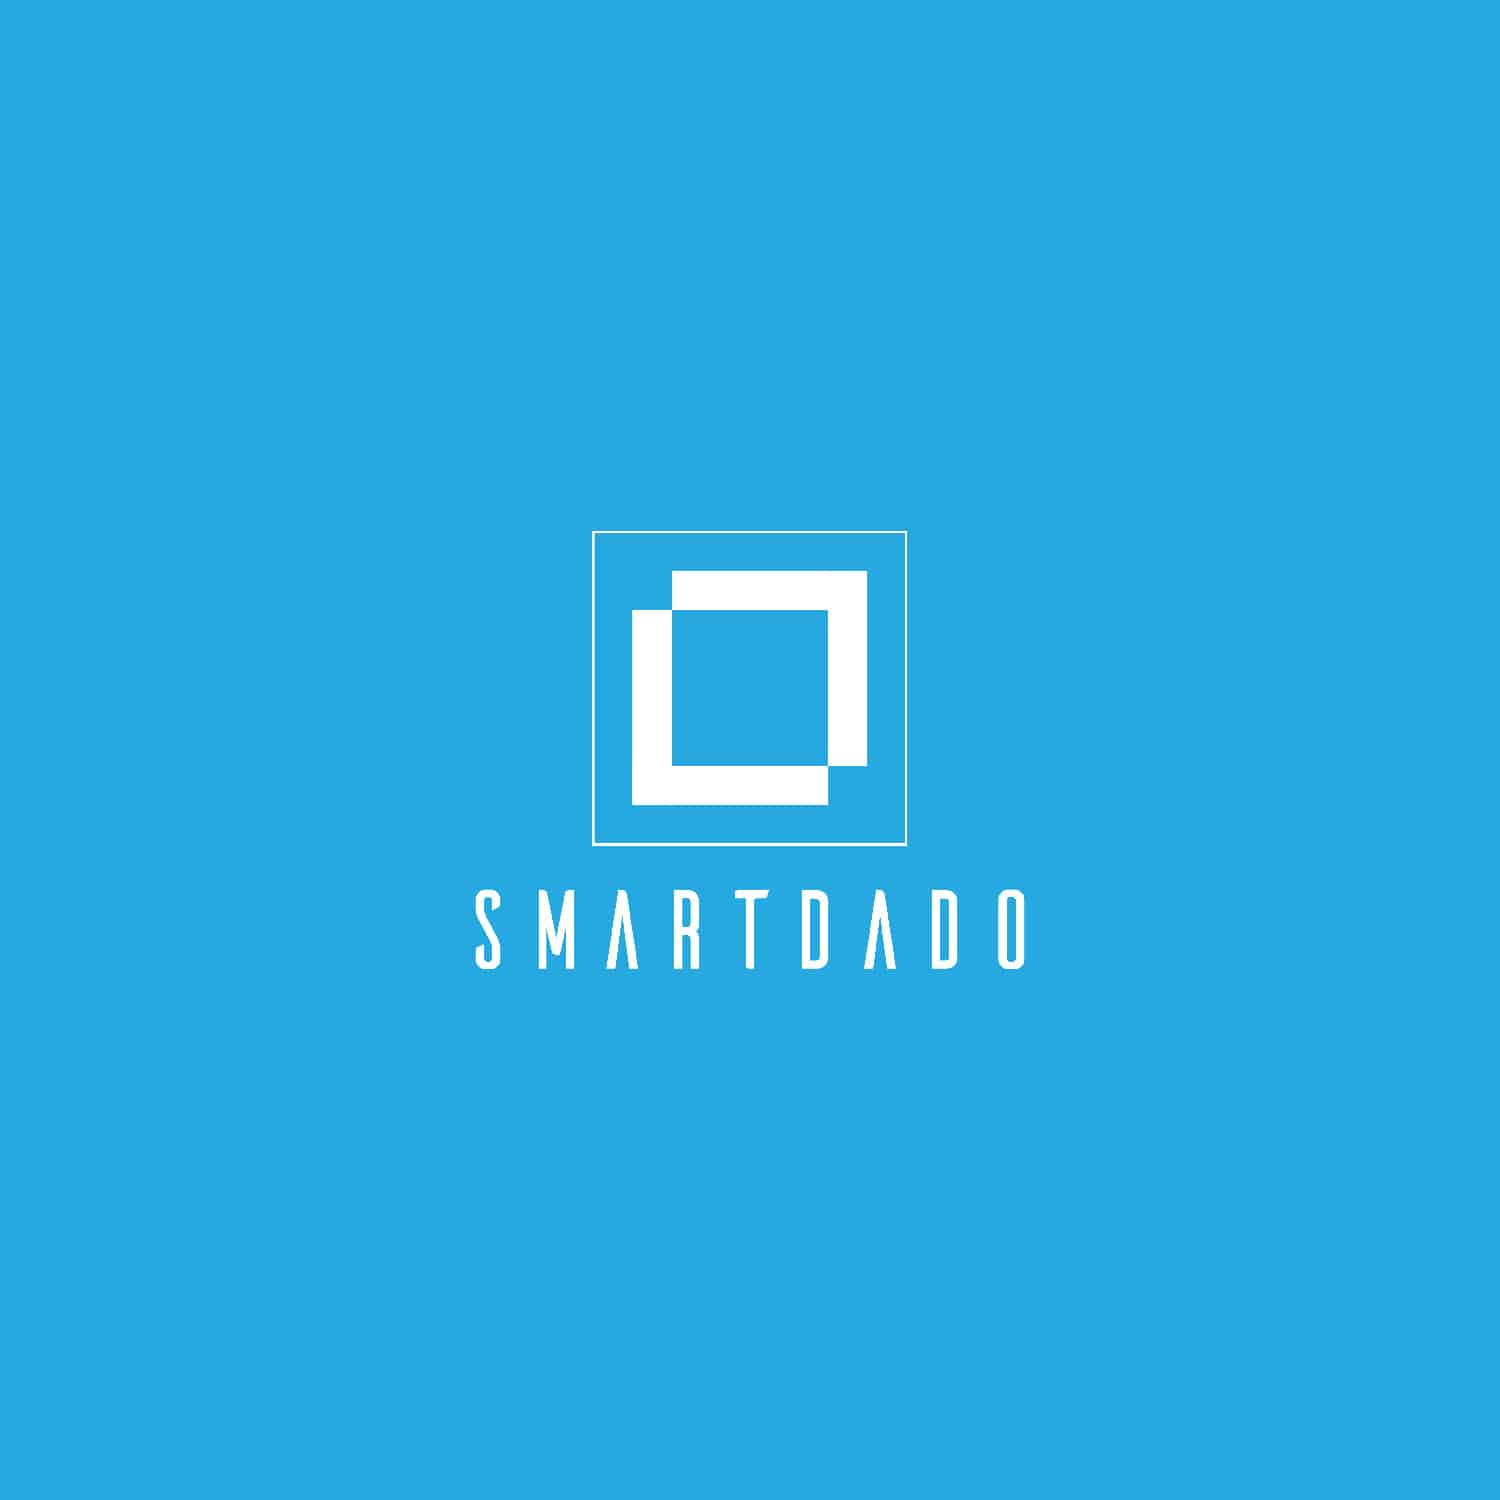 https://horizonplus.eu/project/branding-and-webdesign-smartdado/